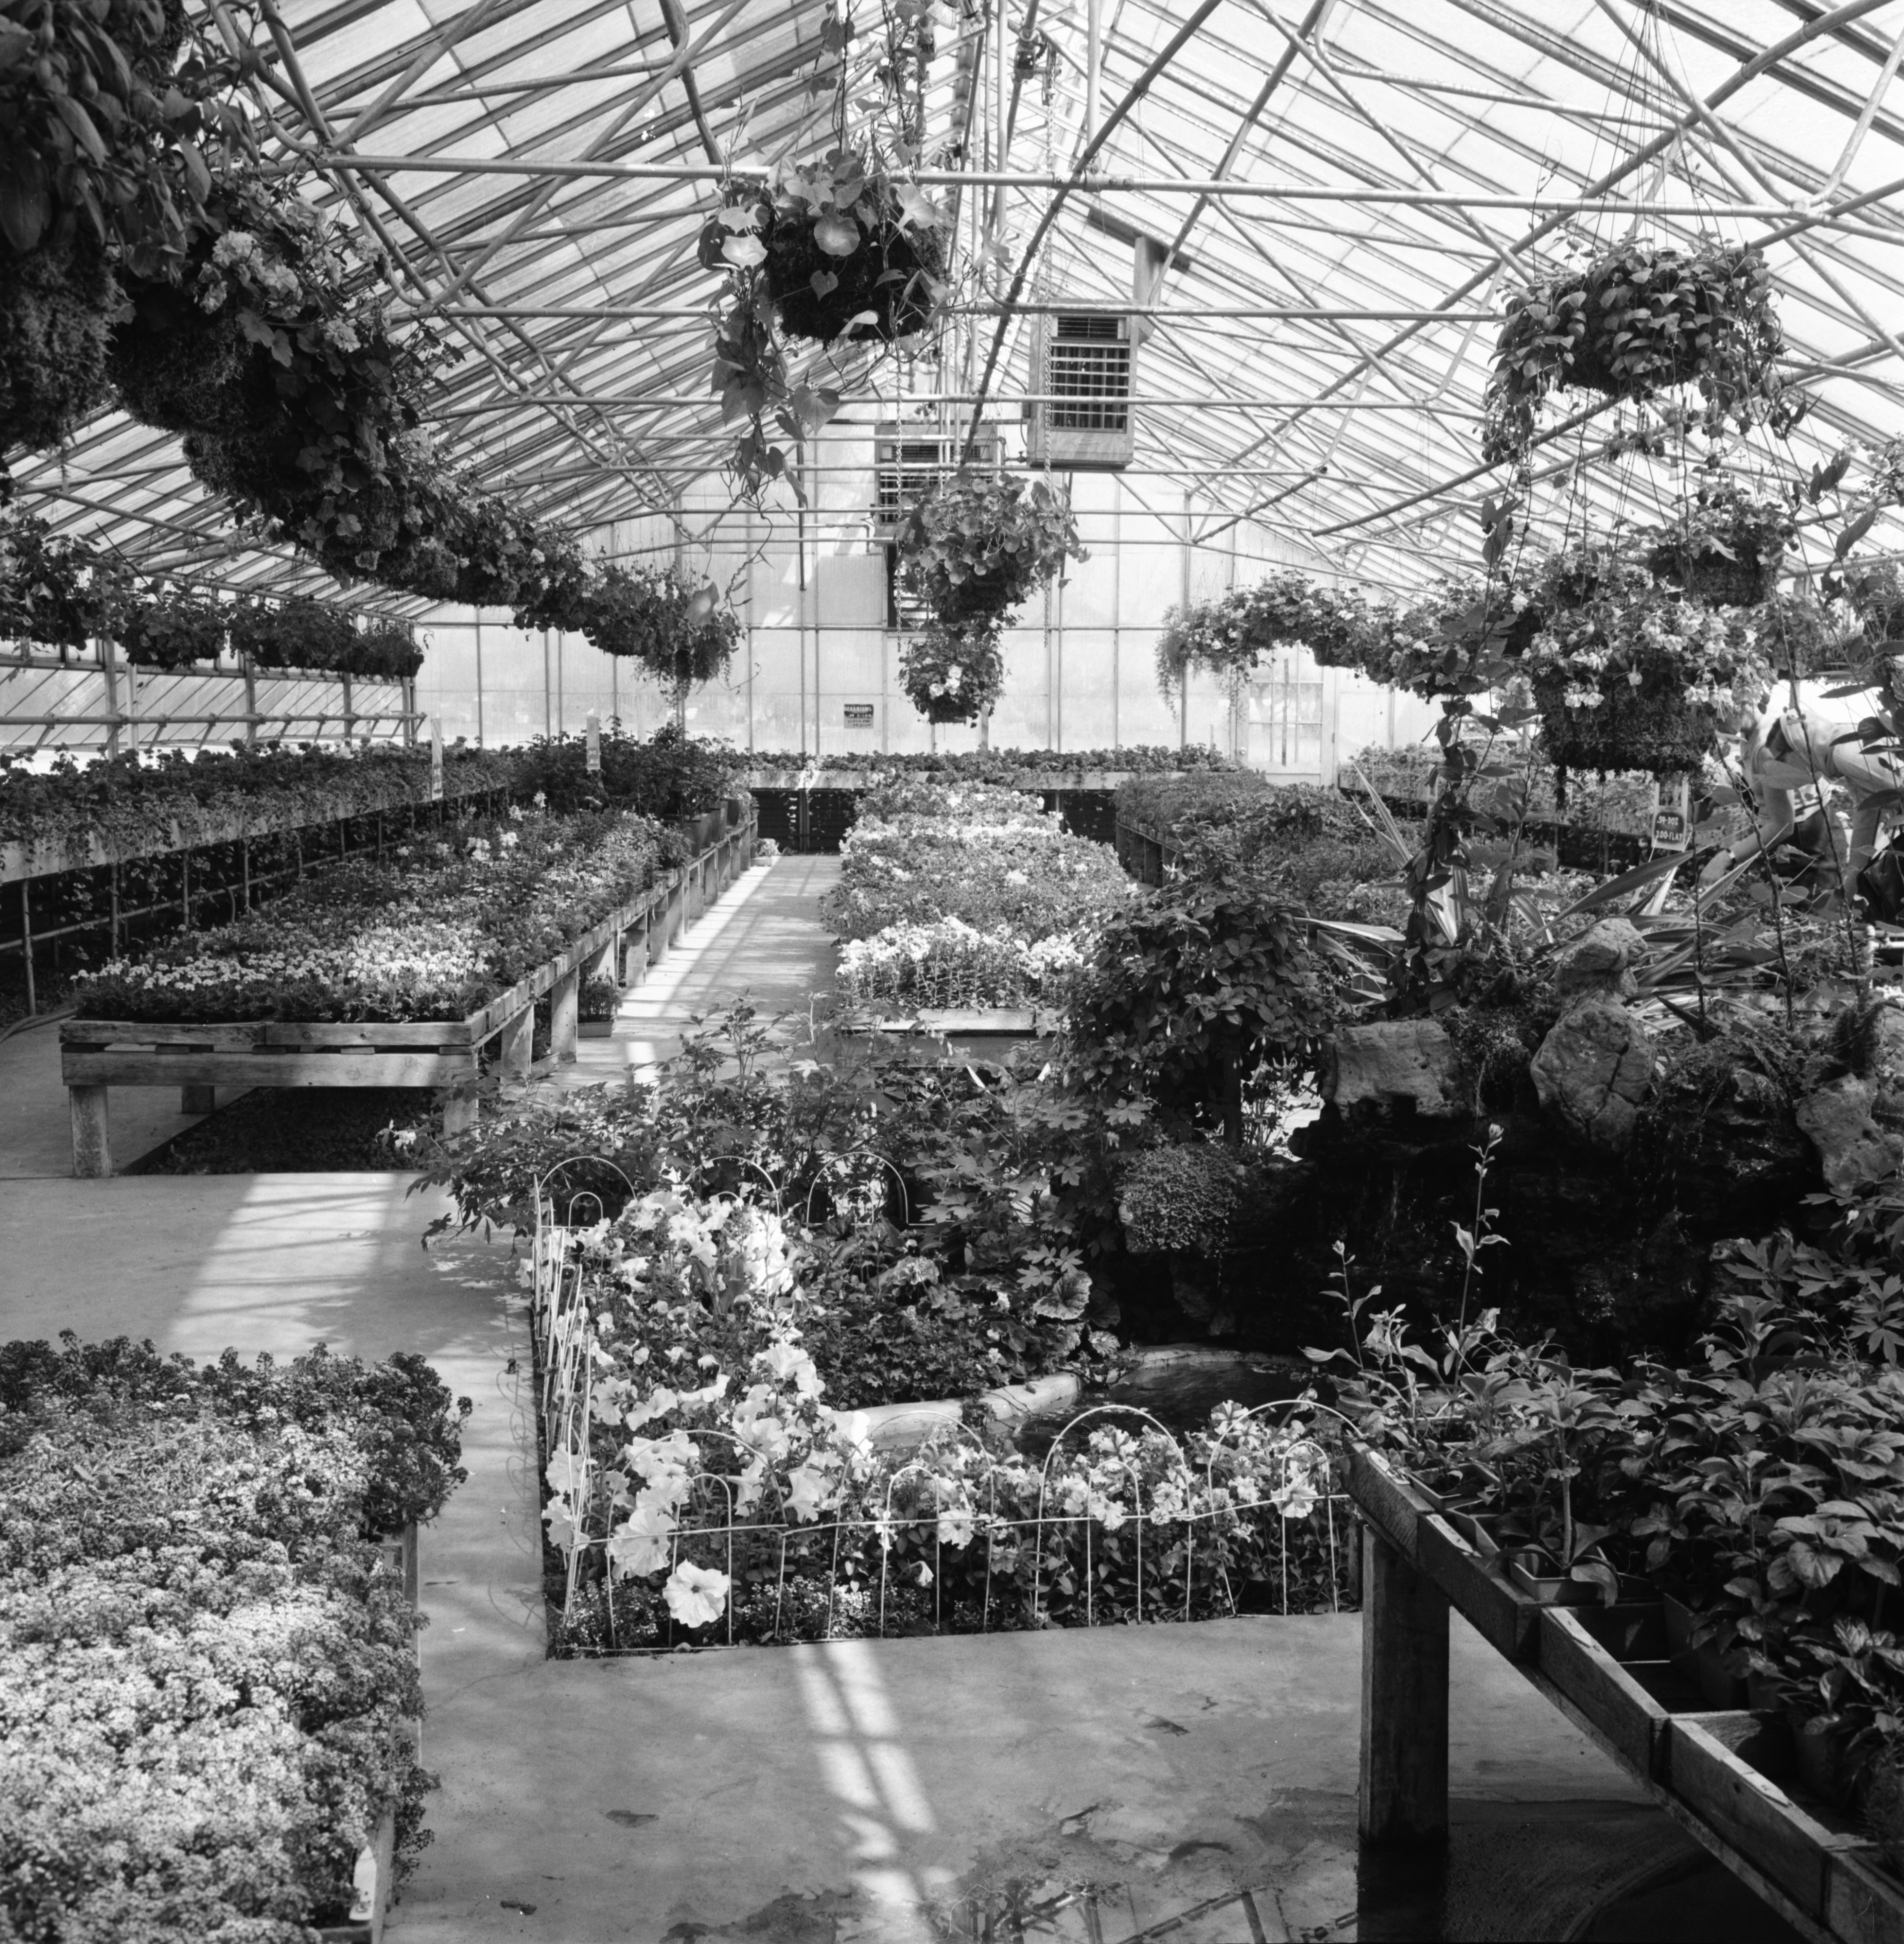 Hanging Flower Baskets in Greenhouse at Farmer Grant's Market, Jackson Rd, May, 1965 image